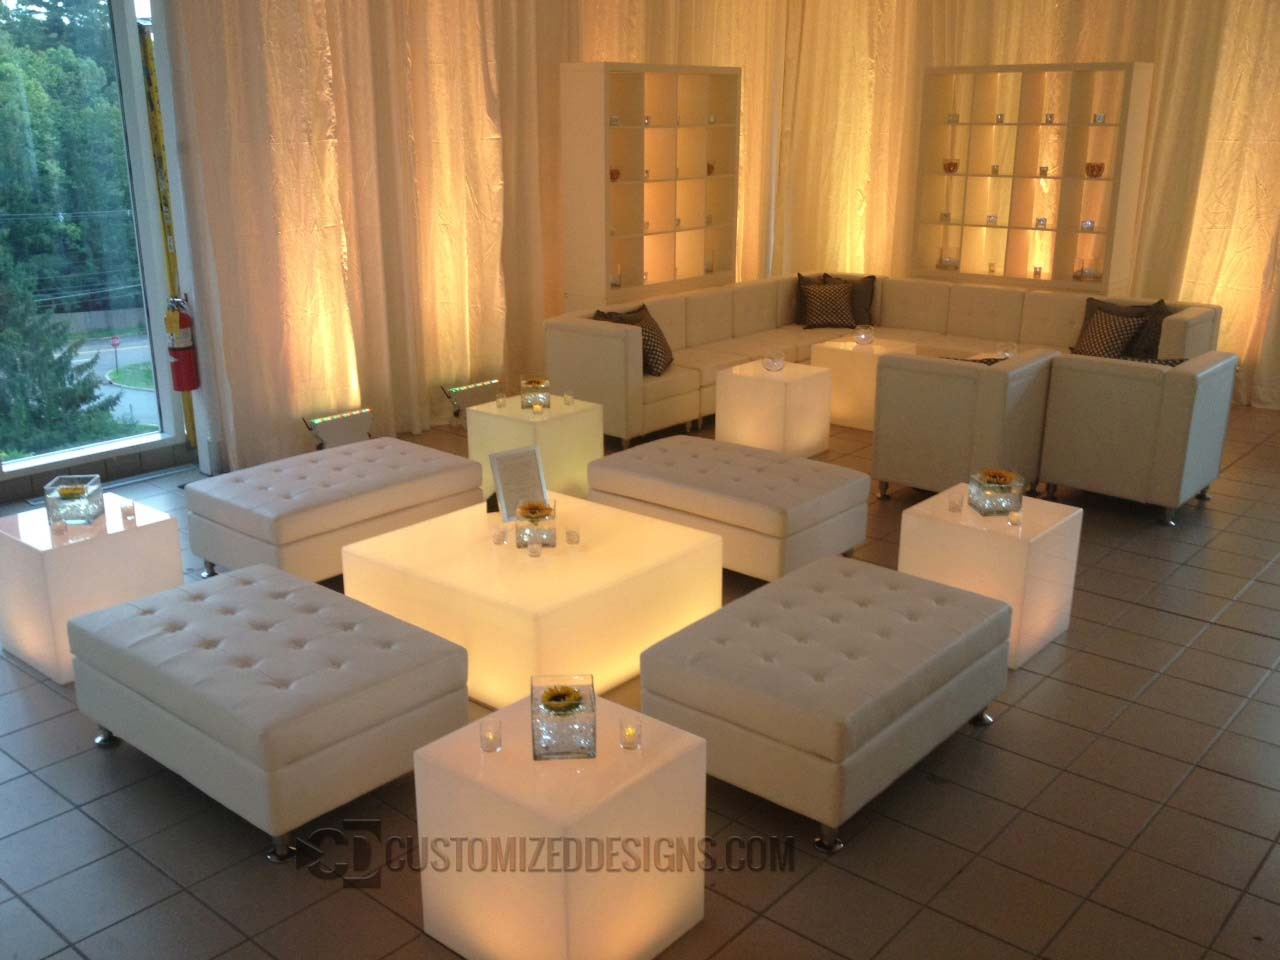 Led lighted coffee table for nightclubs lounges or home bars Home bar furniture canada